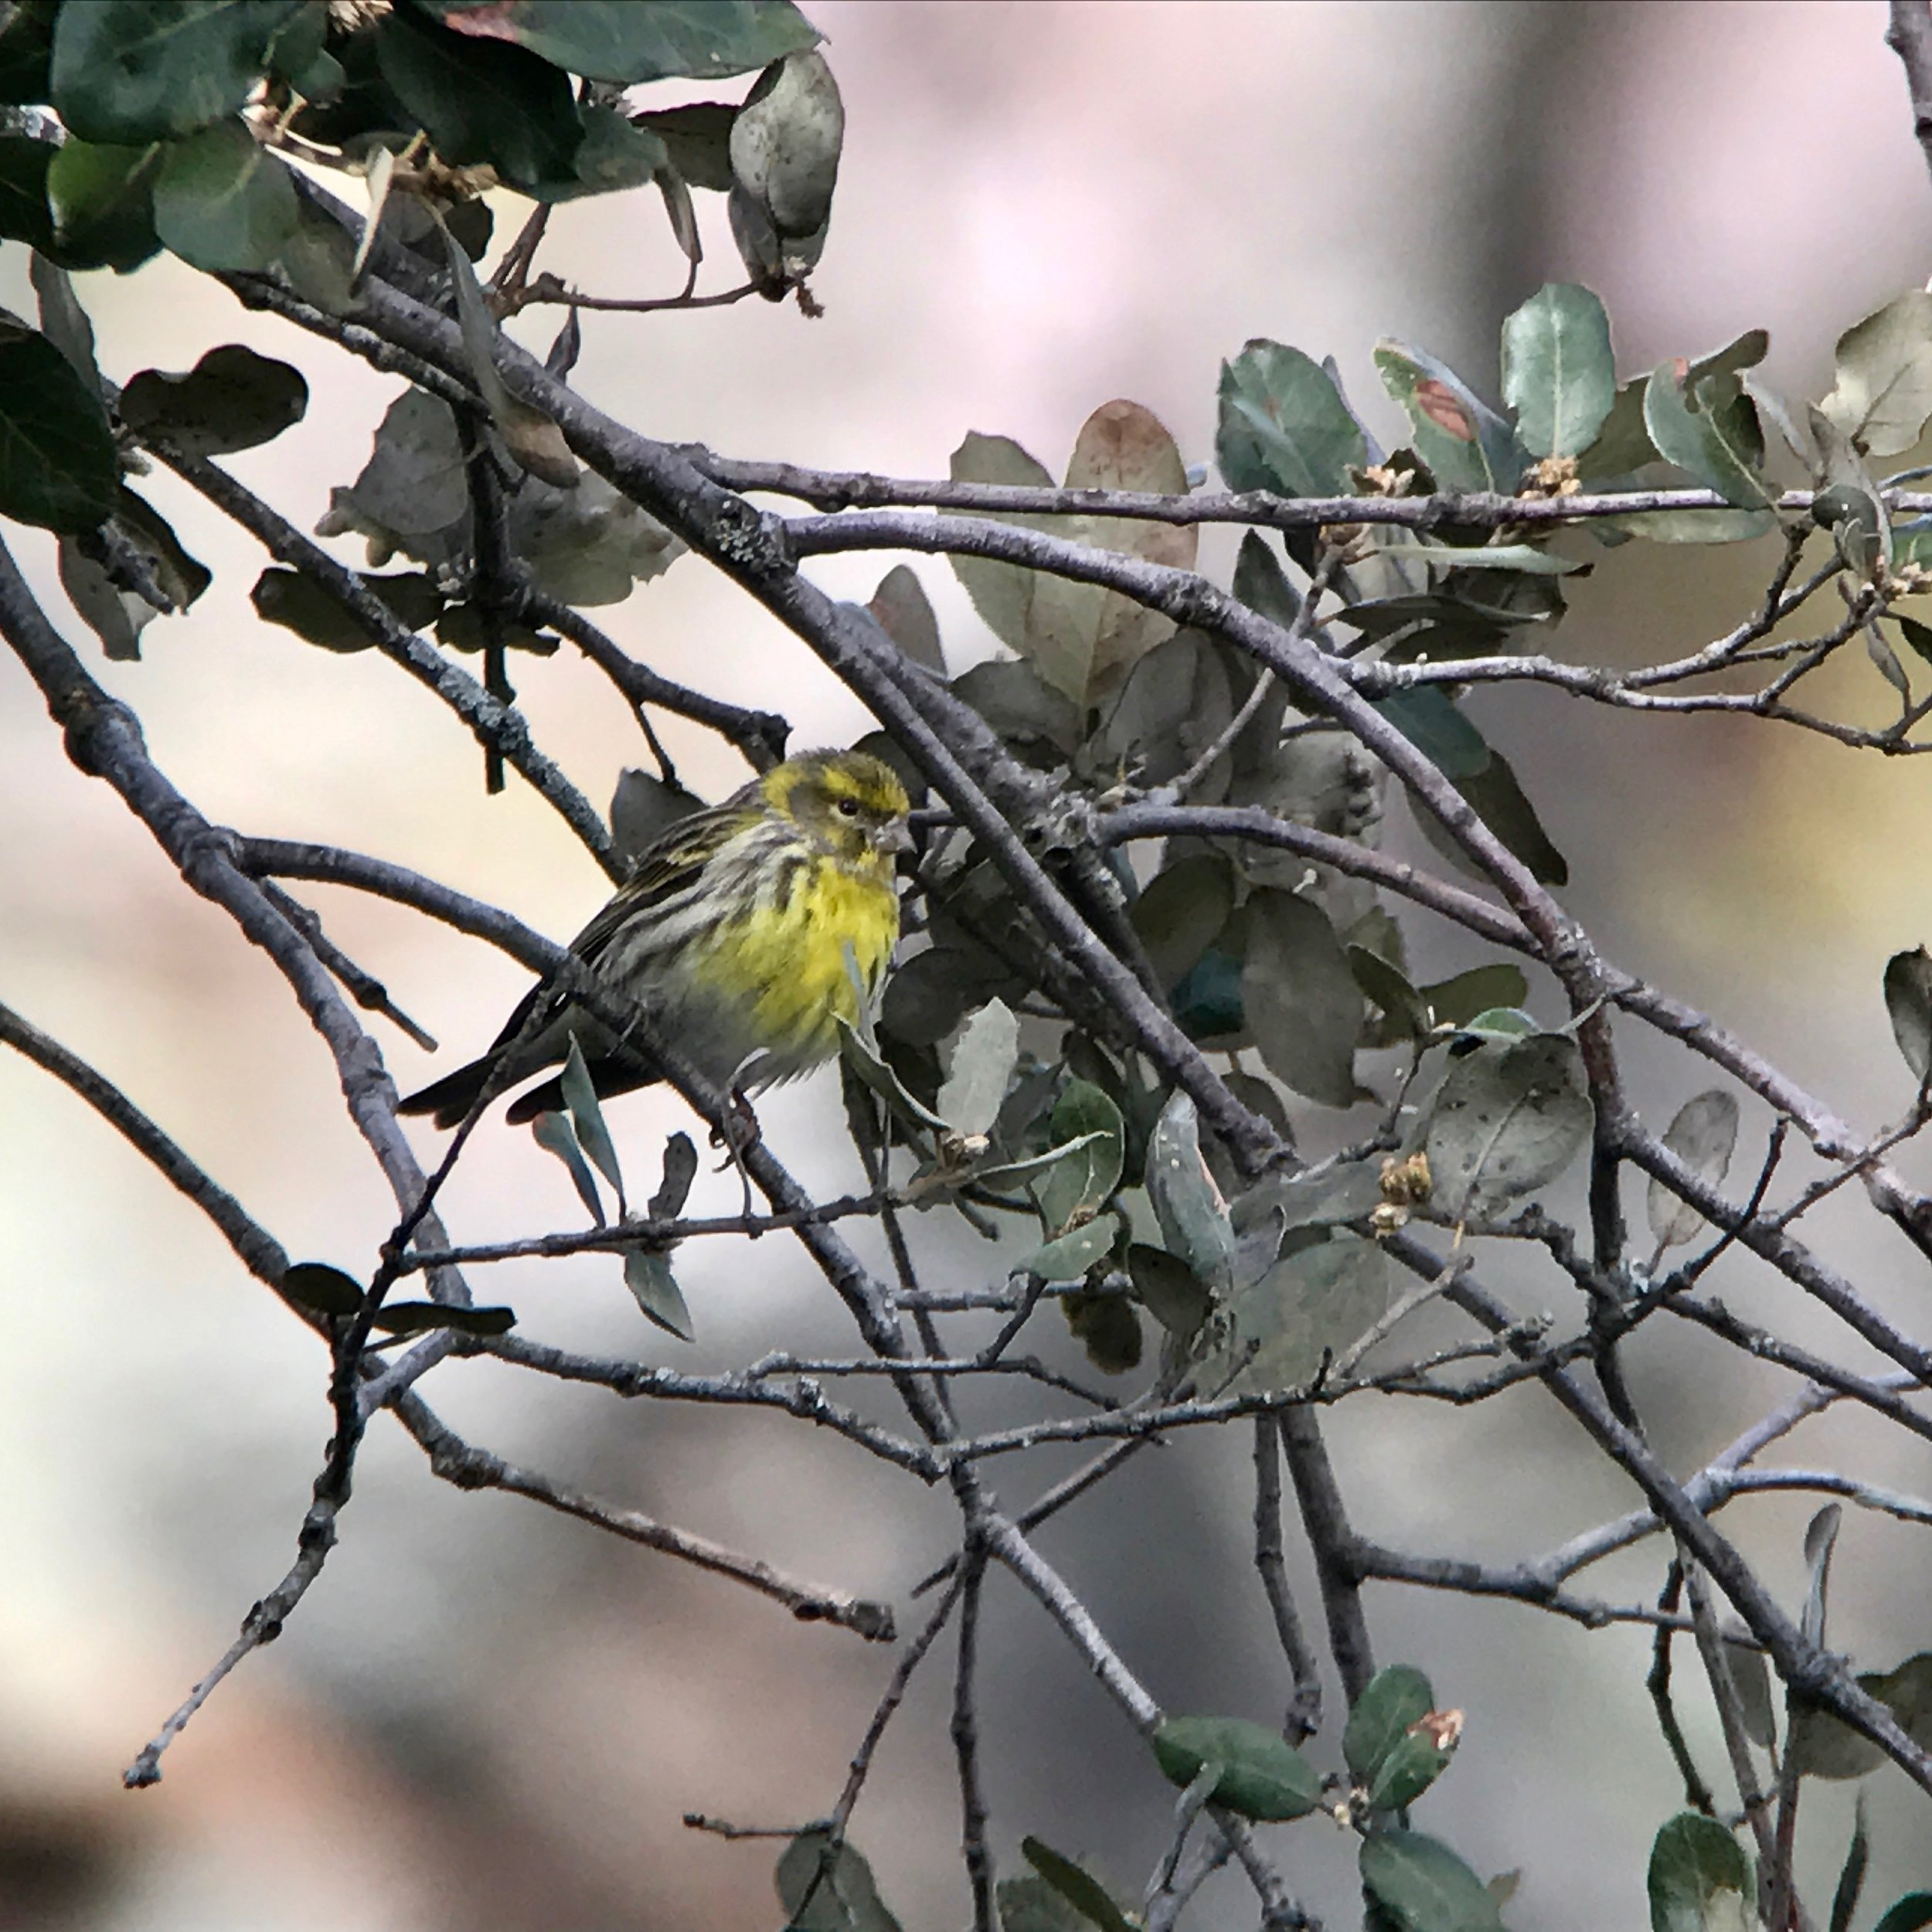 European serins serenaded us on the trails in the national park.